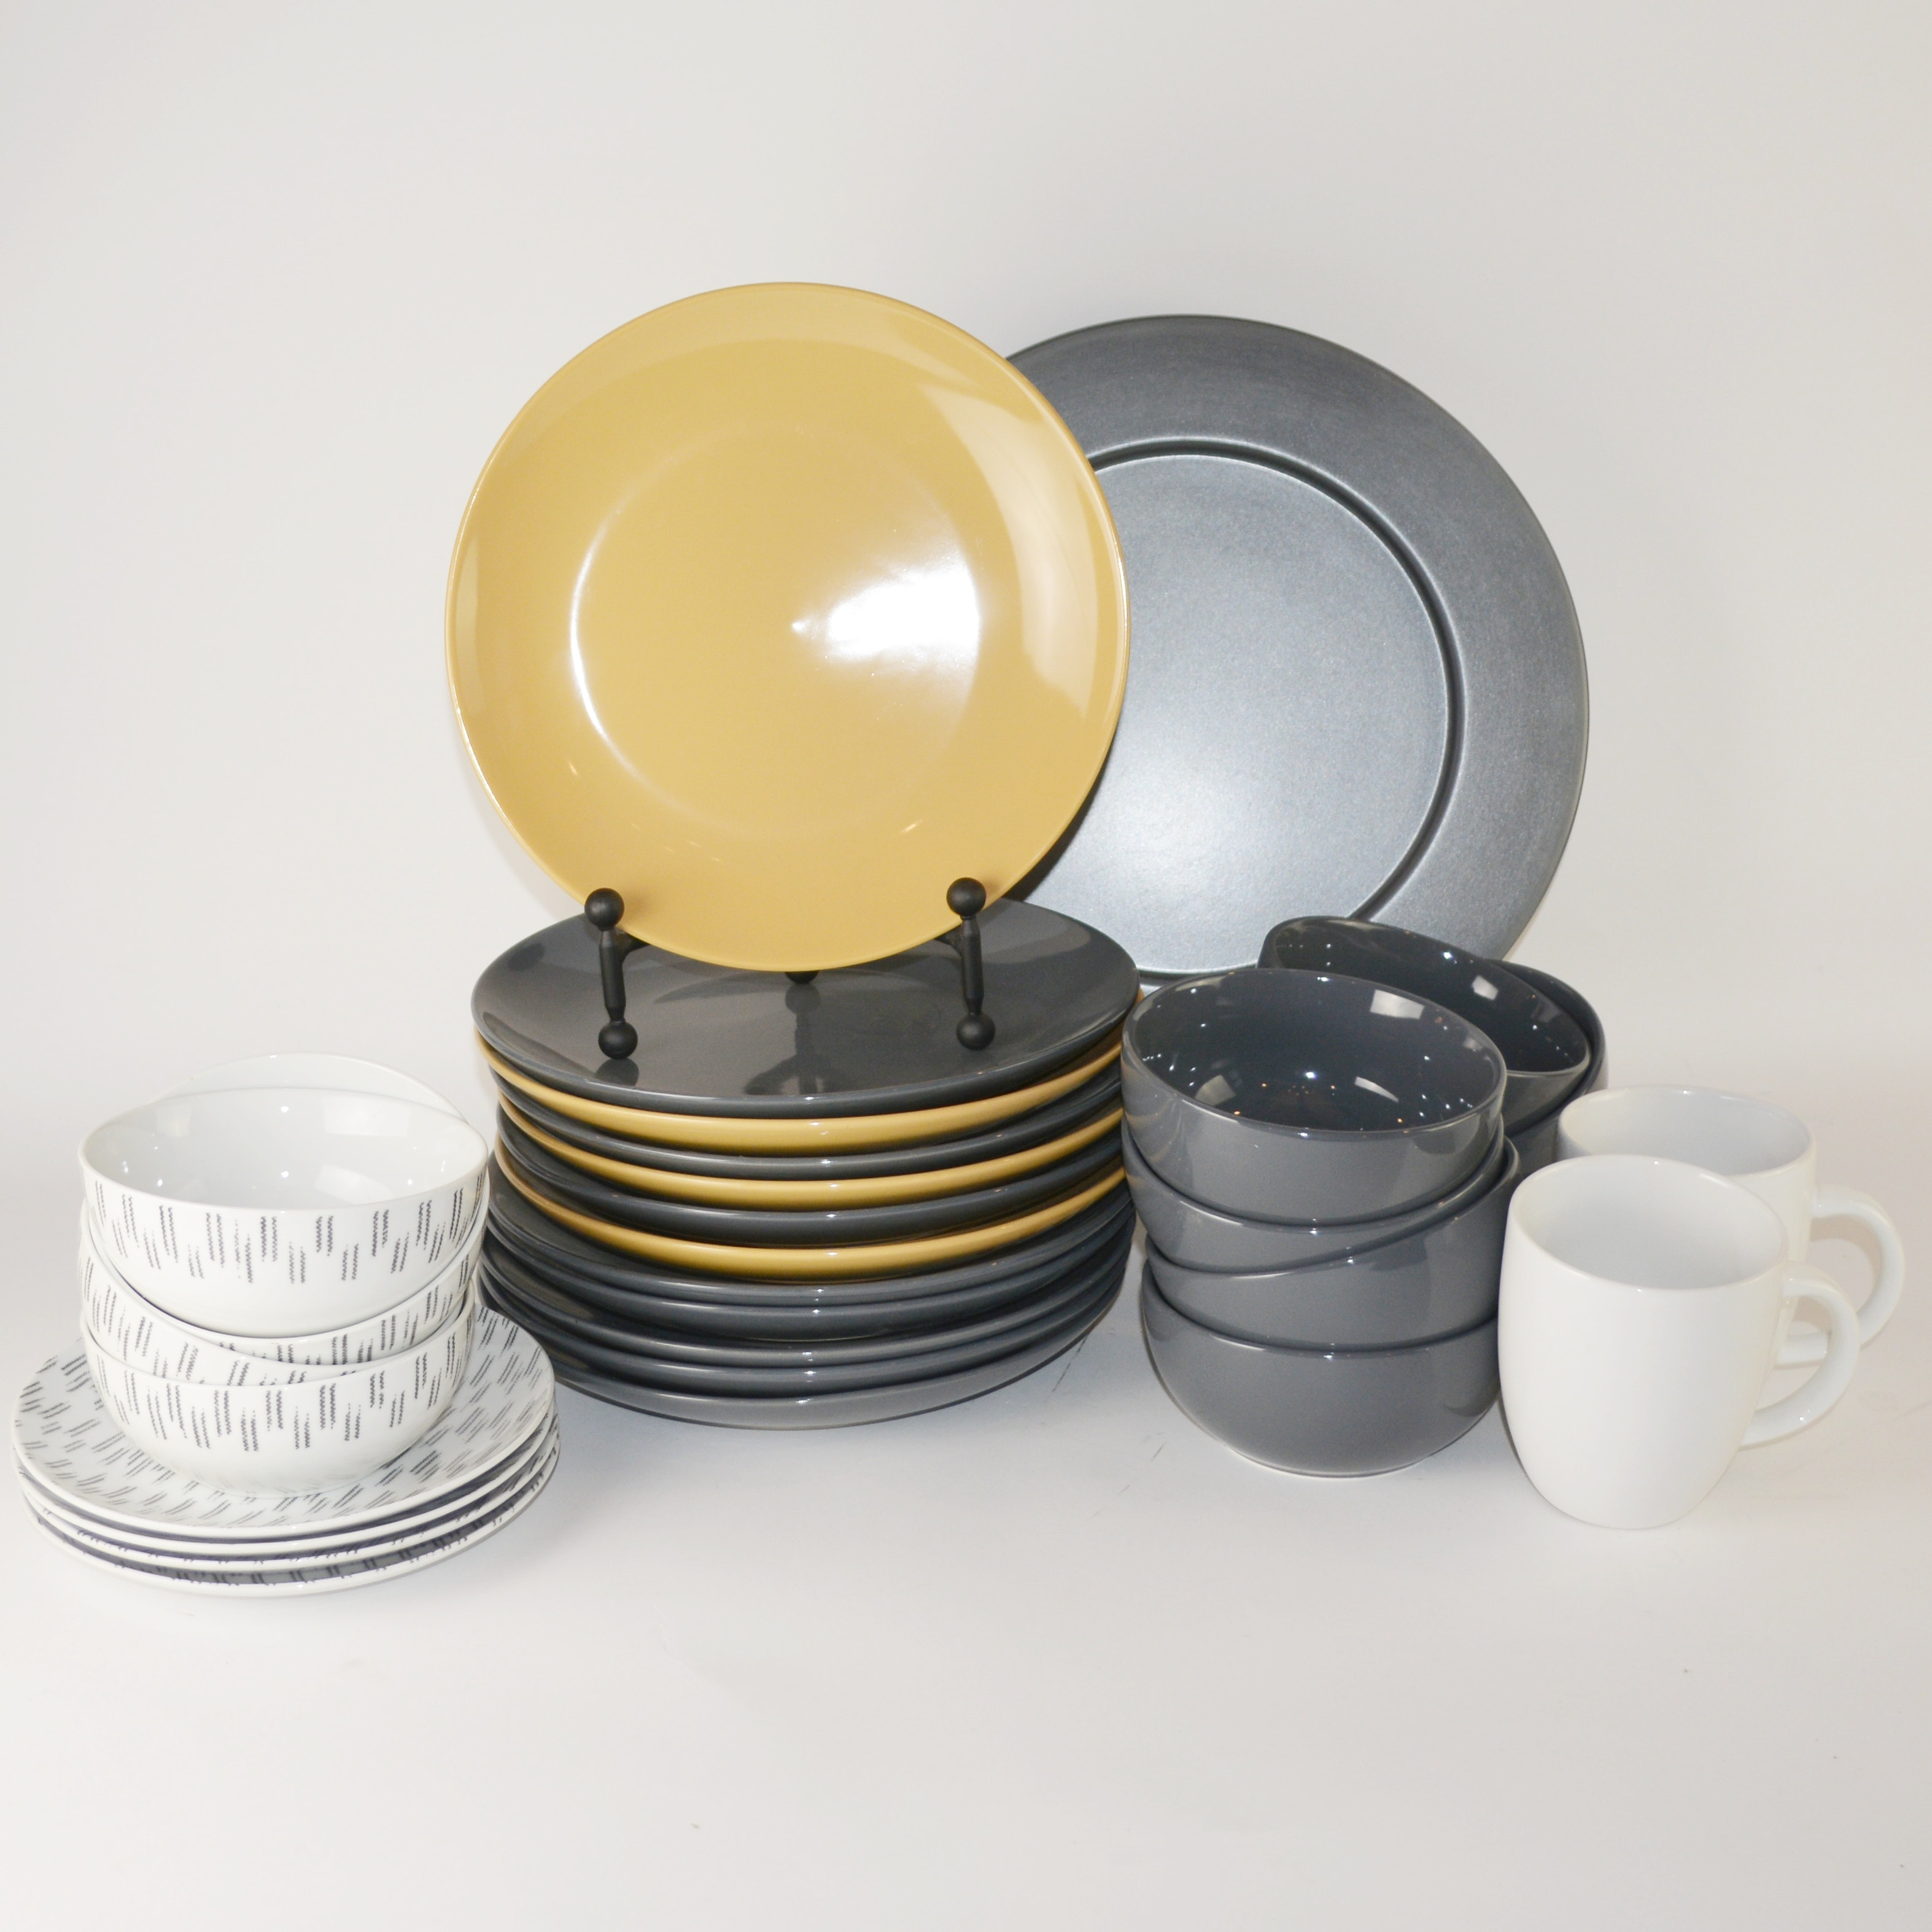 West Elm Ceramic Dinnerware and Others ... : west elm dinnerware - pezcame.com